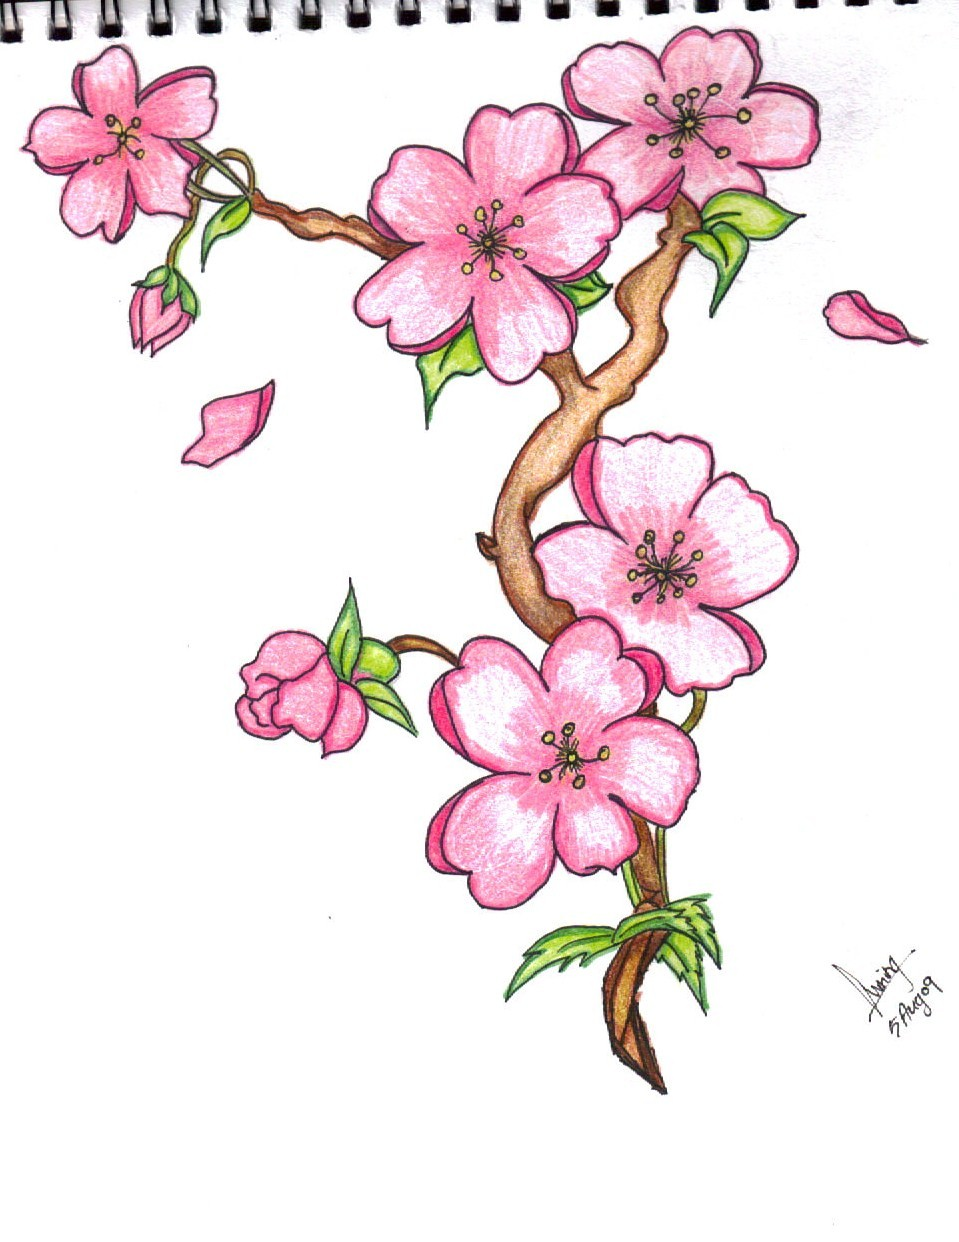 Drawn sakura blossom pencil step by step Pinterest Drawing Drawings Flower board